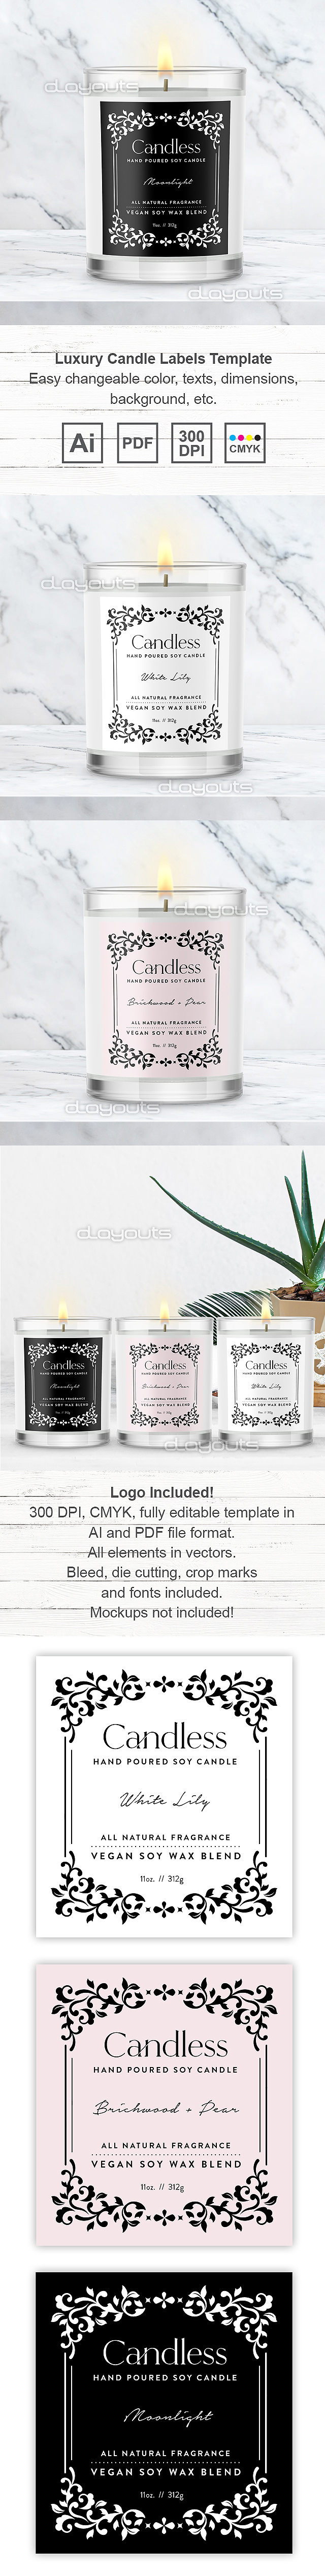 Luxury Candle Labels Template